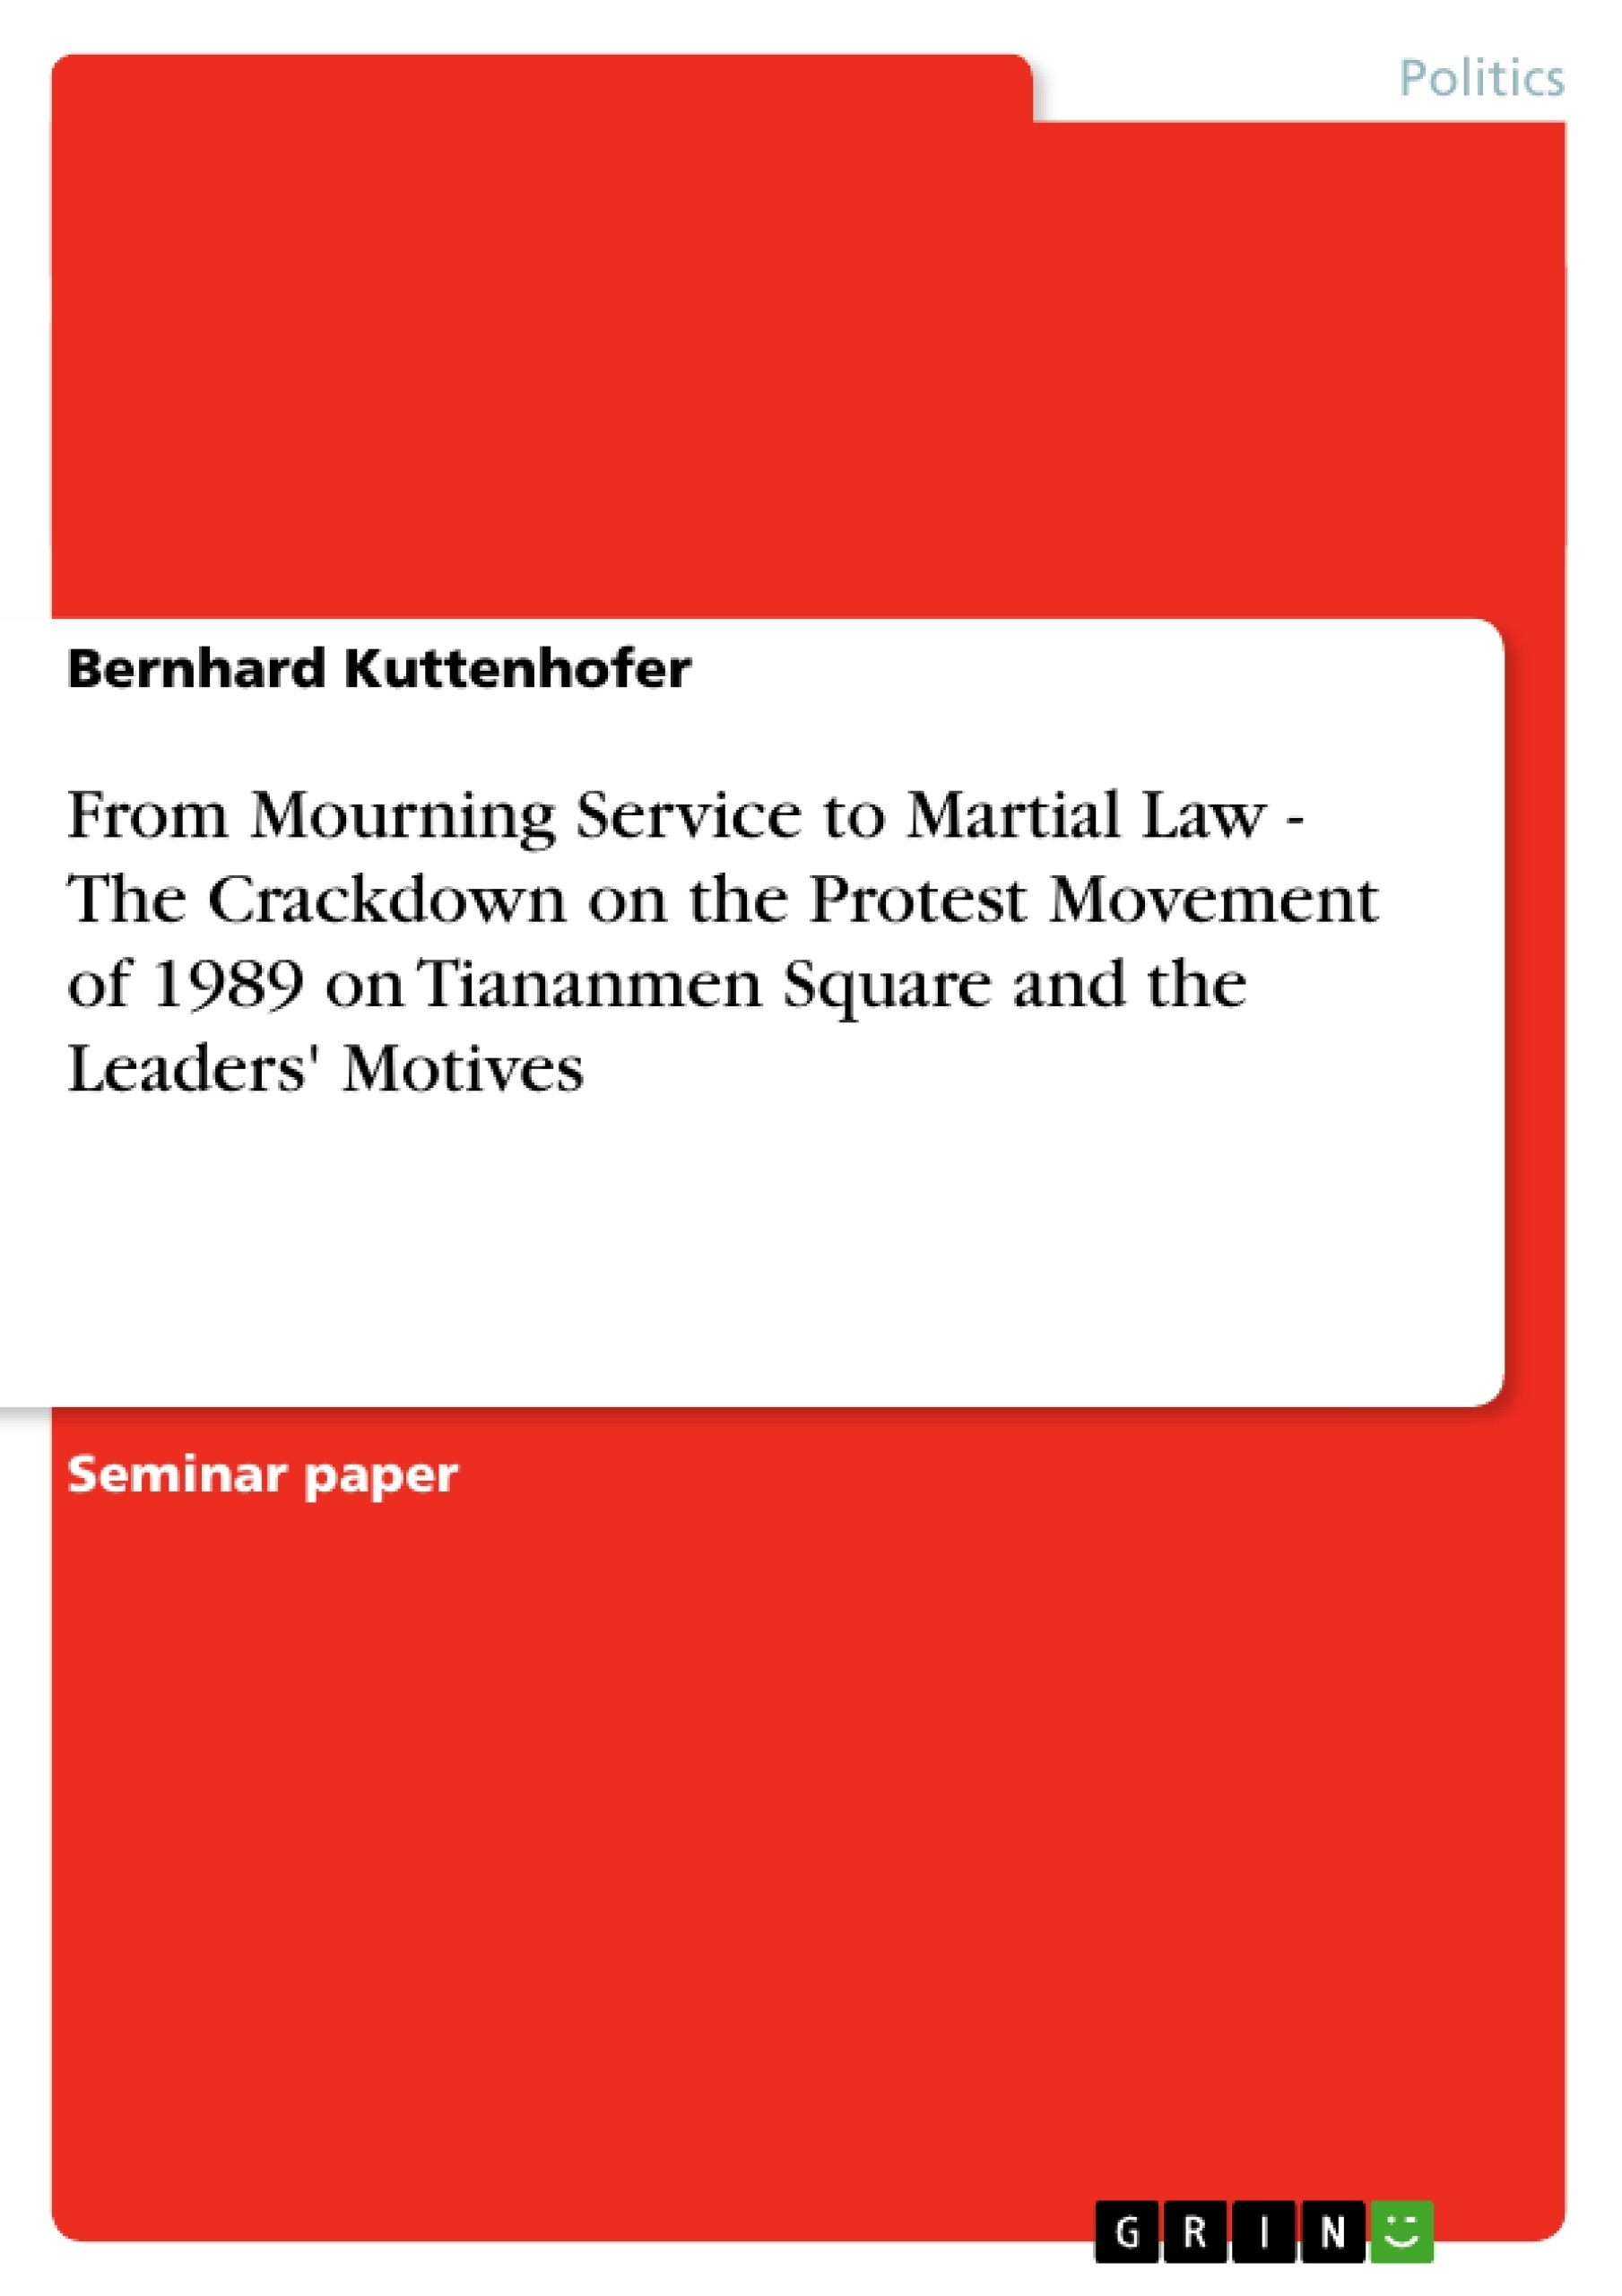 Title: From Mourning Service to Martial Law - The Crackdown on the Protest Movement of 1989 on Tiananmen Square and the Leaders' Motives